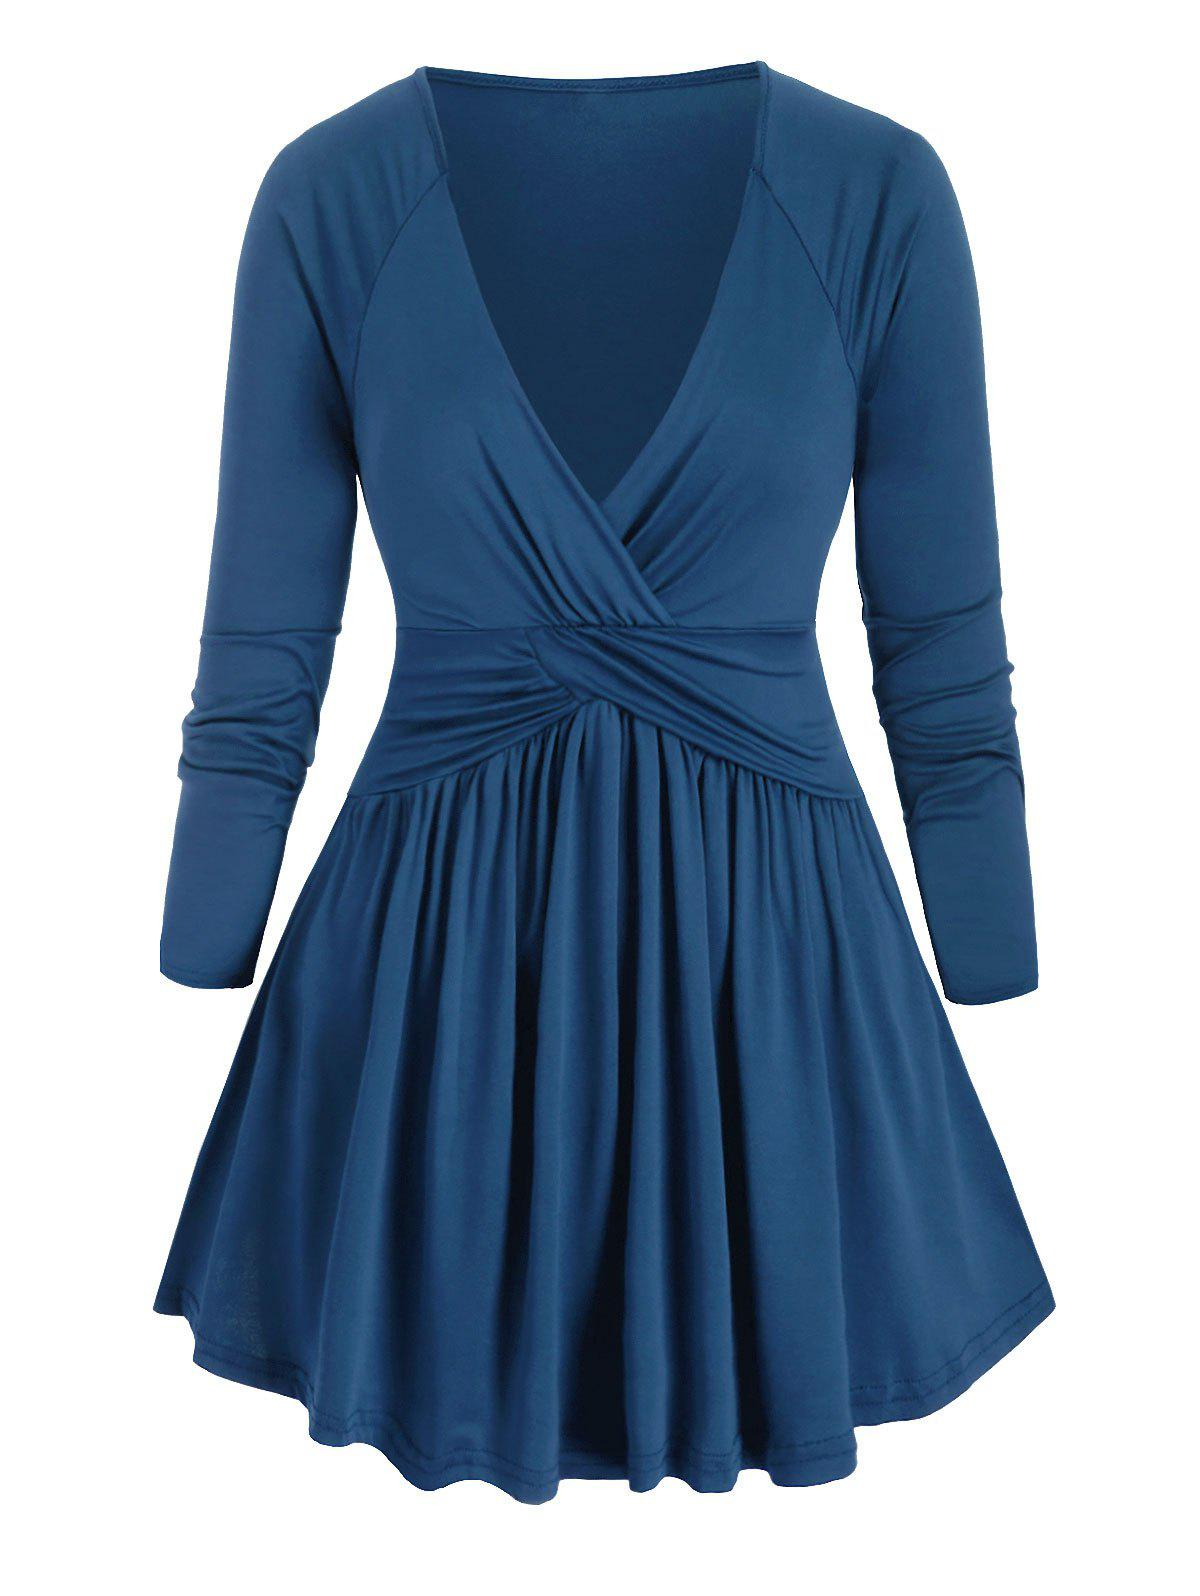 Cross Front Ruched Long Sleeve Plus Size Top - SILK BLUE 2X